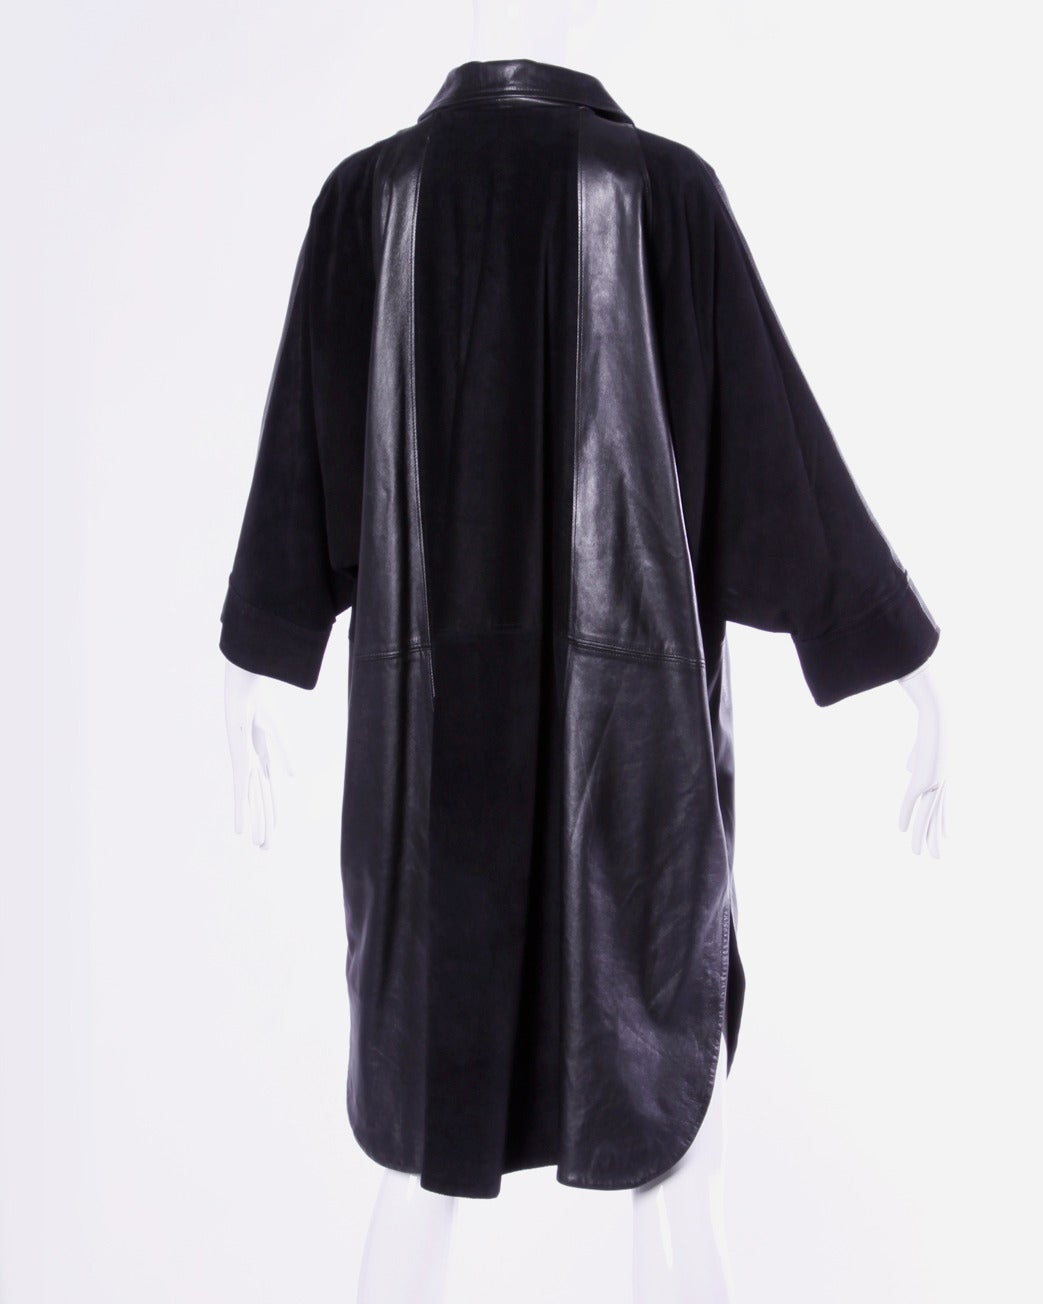 Jean Claude Jitrois Vintage 1980s 80s Black Leather Batwing or Cocoon Coat For Sale 4